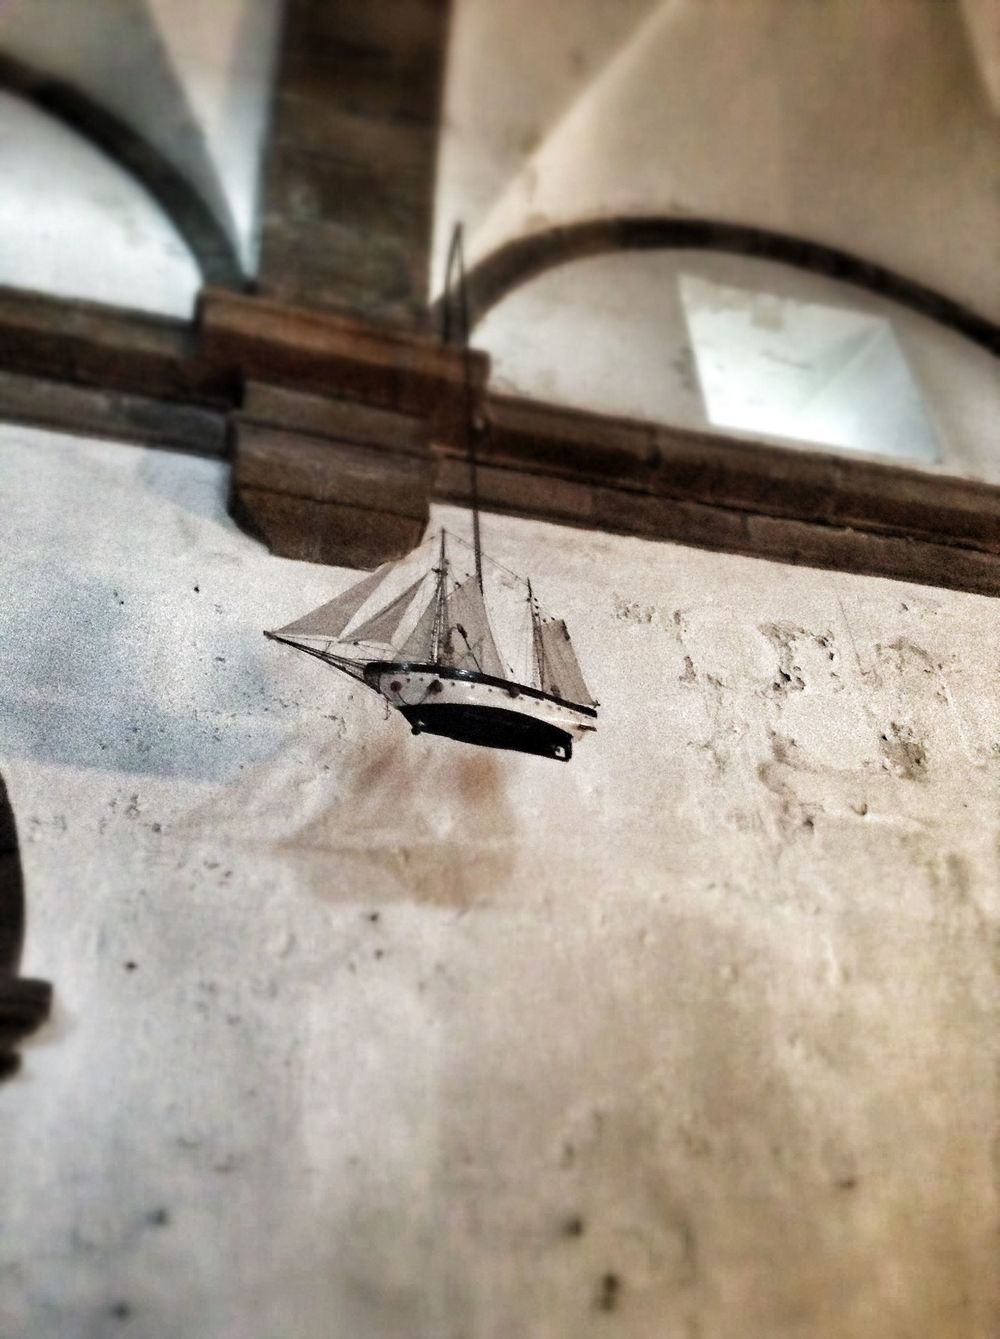 Model ship hanging within the church